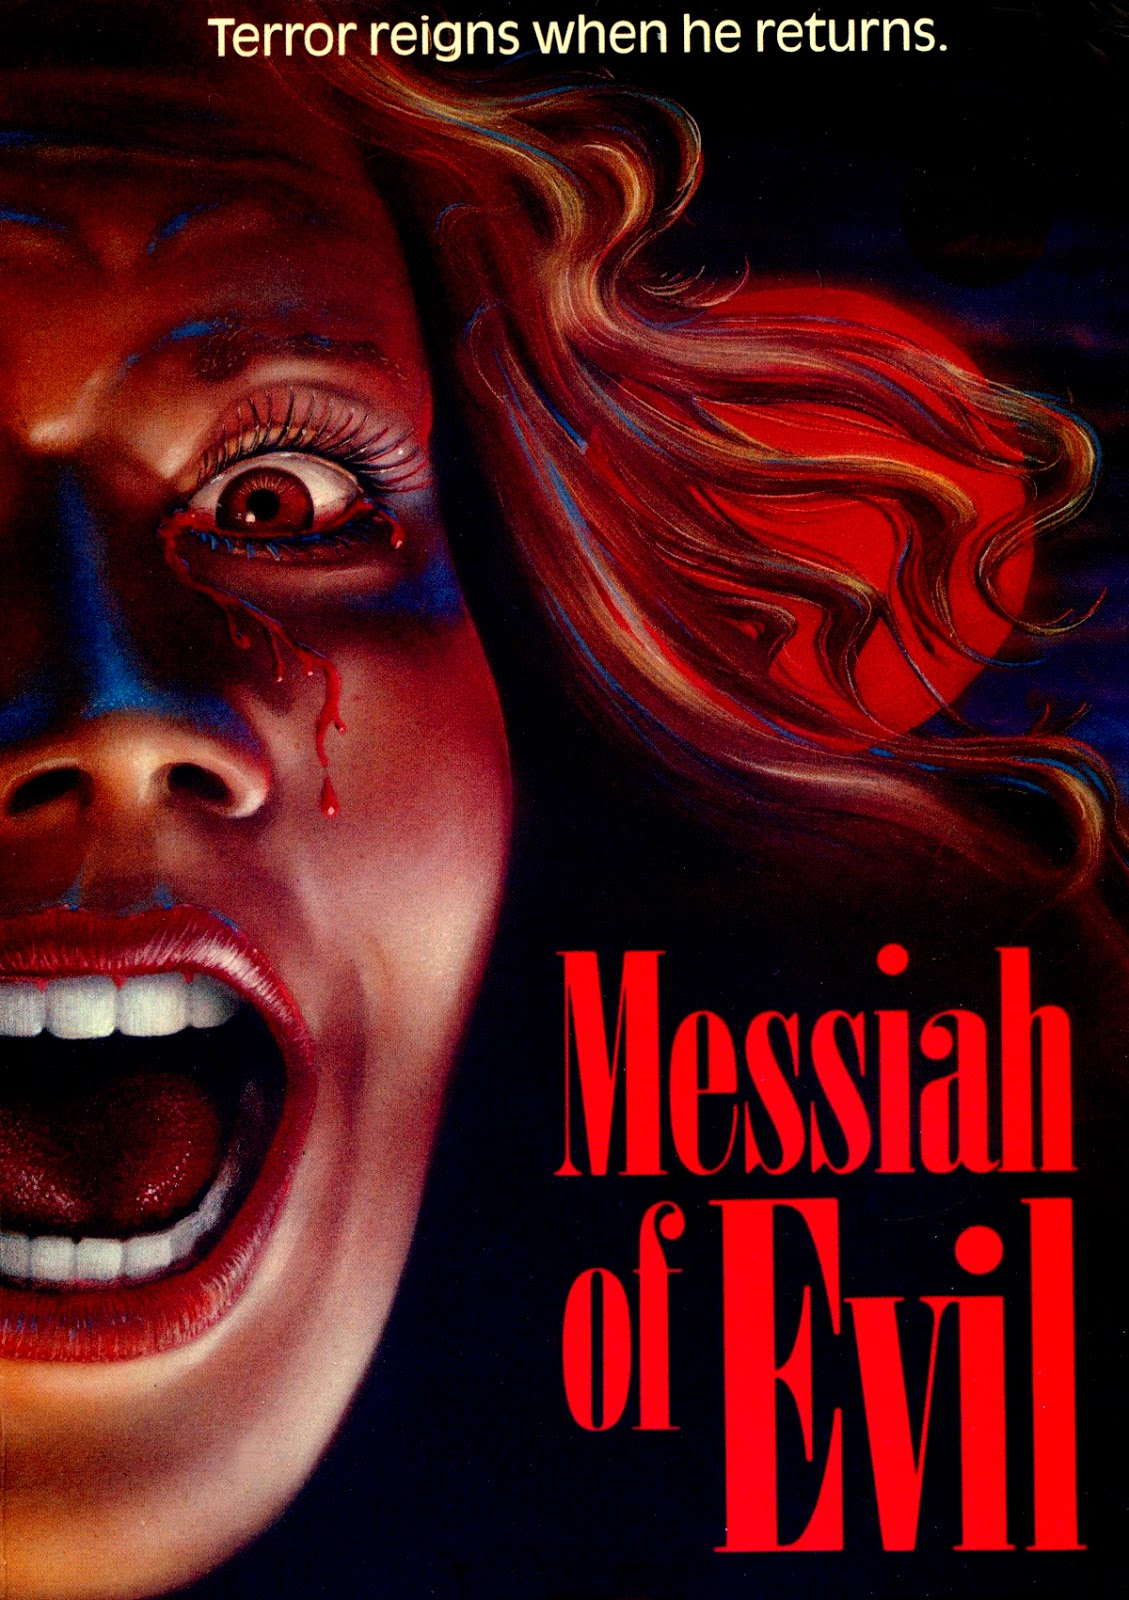 O, Merciful Heaves! — Messiah of Evil (1973) Obscure